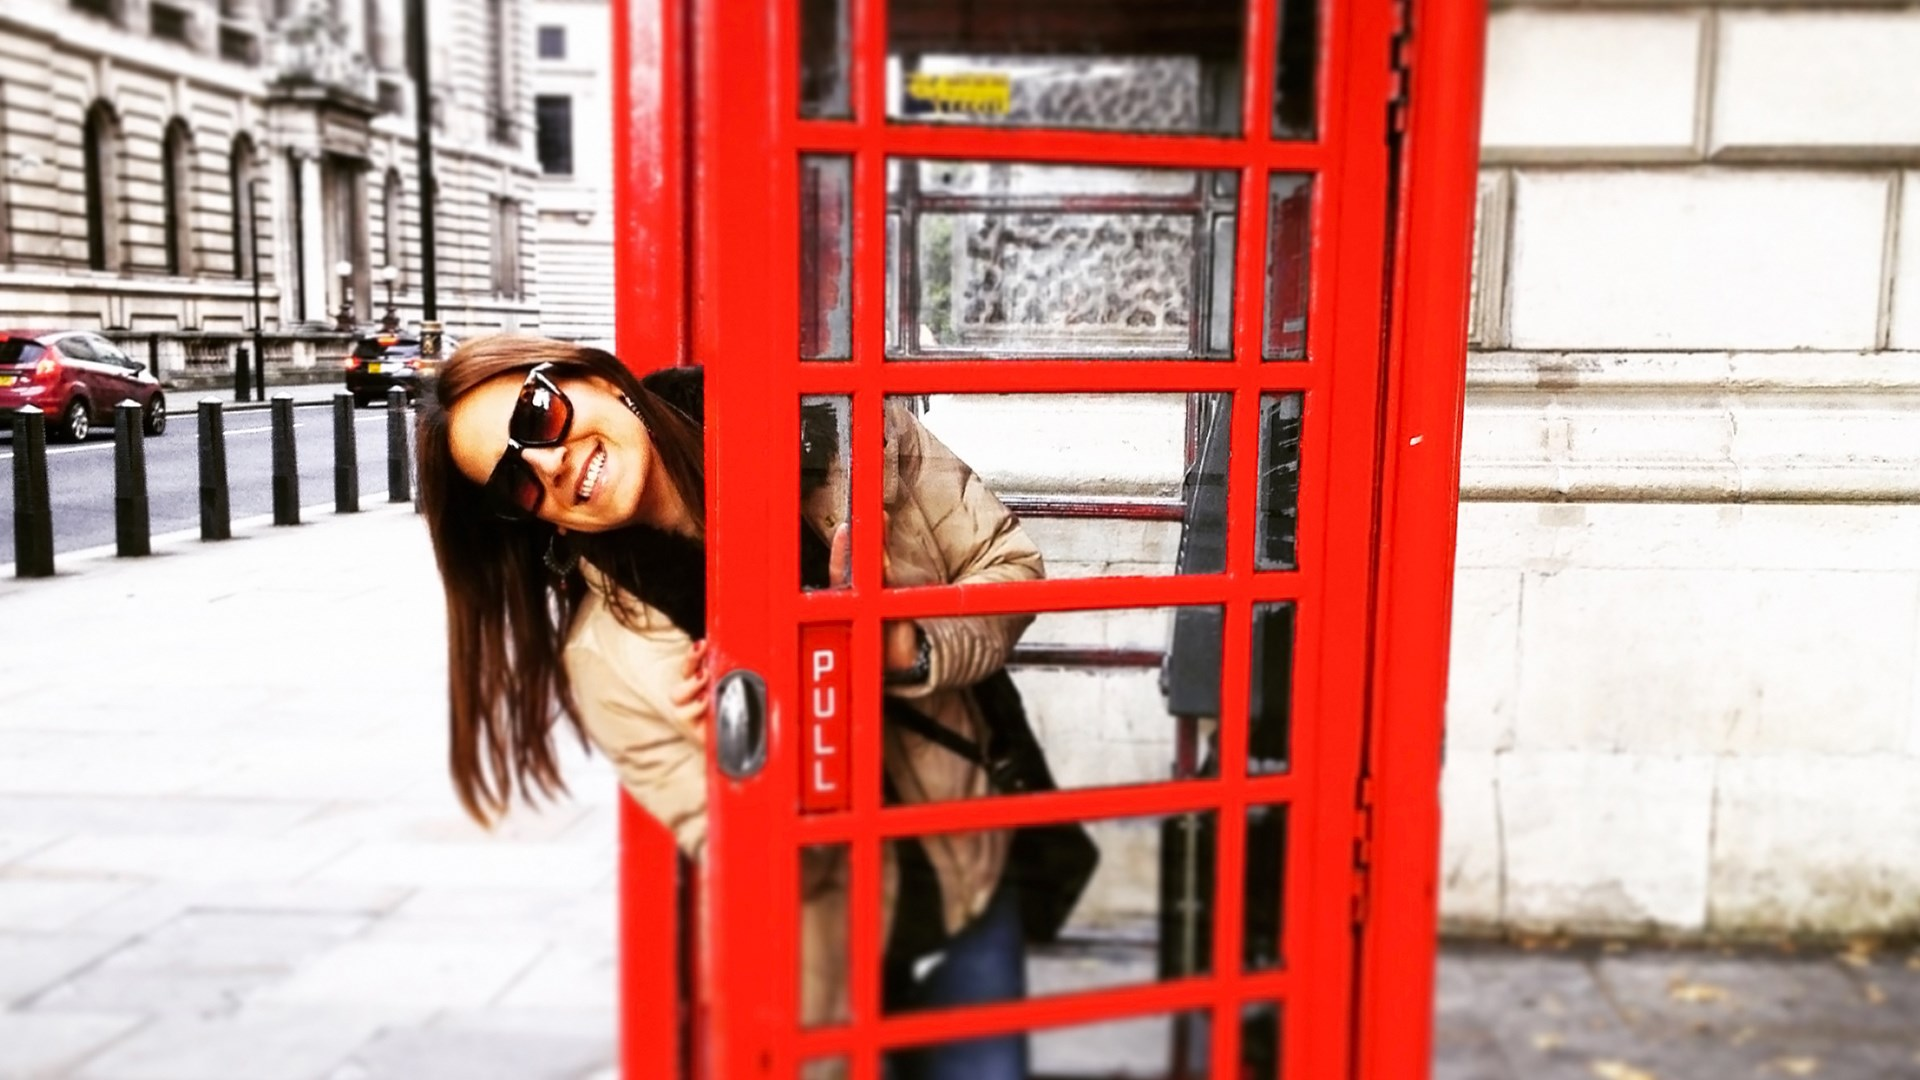 Lady in a London phone booth